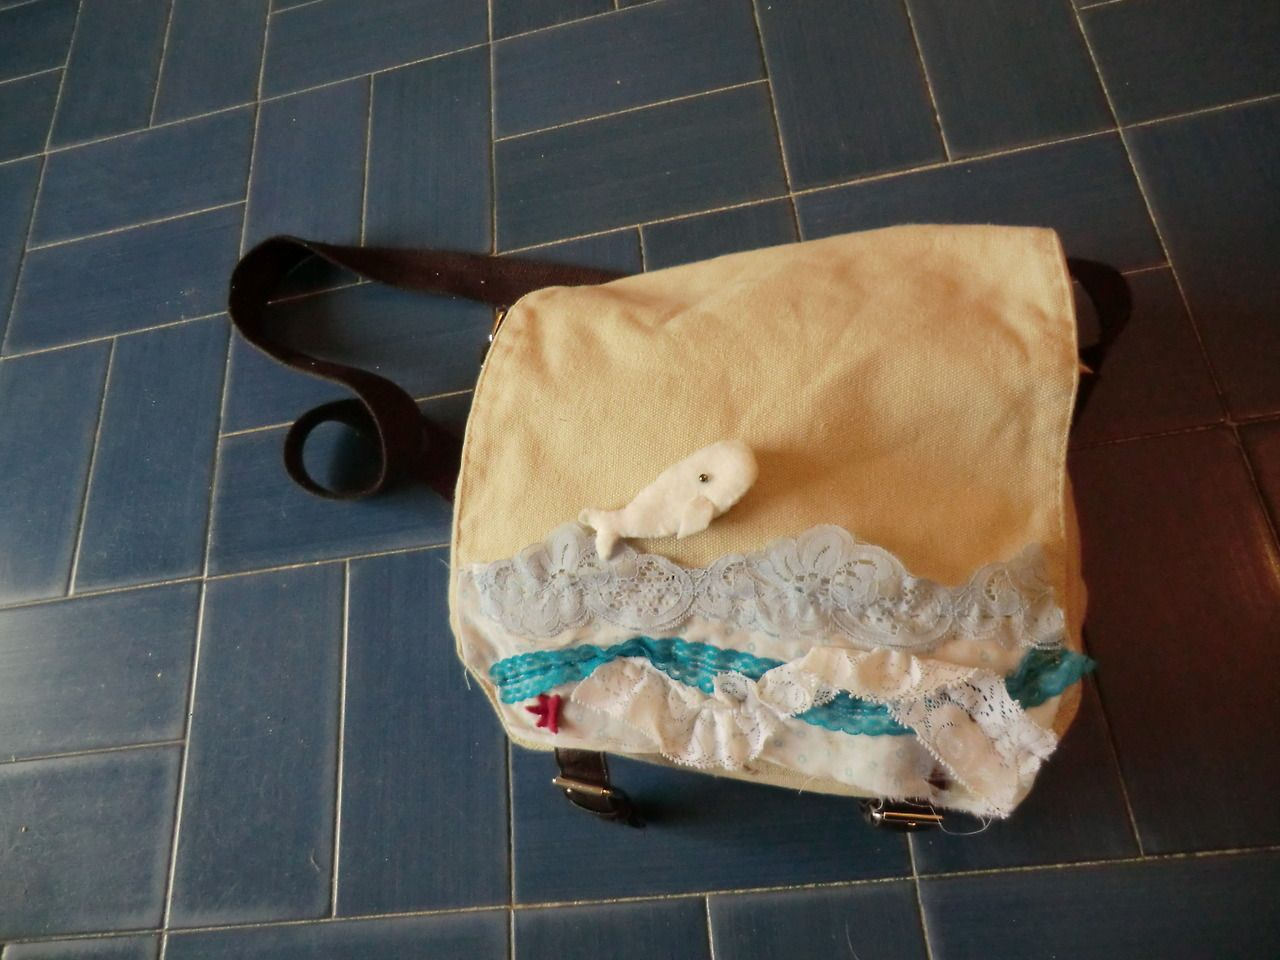 Stylebunny >> Nautical decoration of a bag >> scraps of fabric and lace, with whale brooch accent